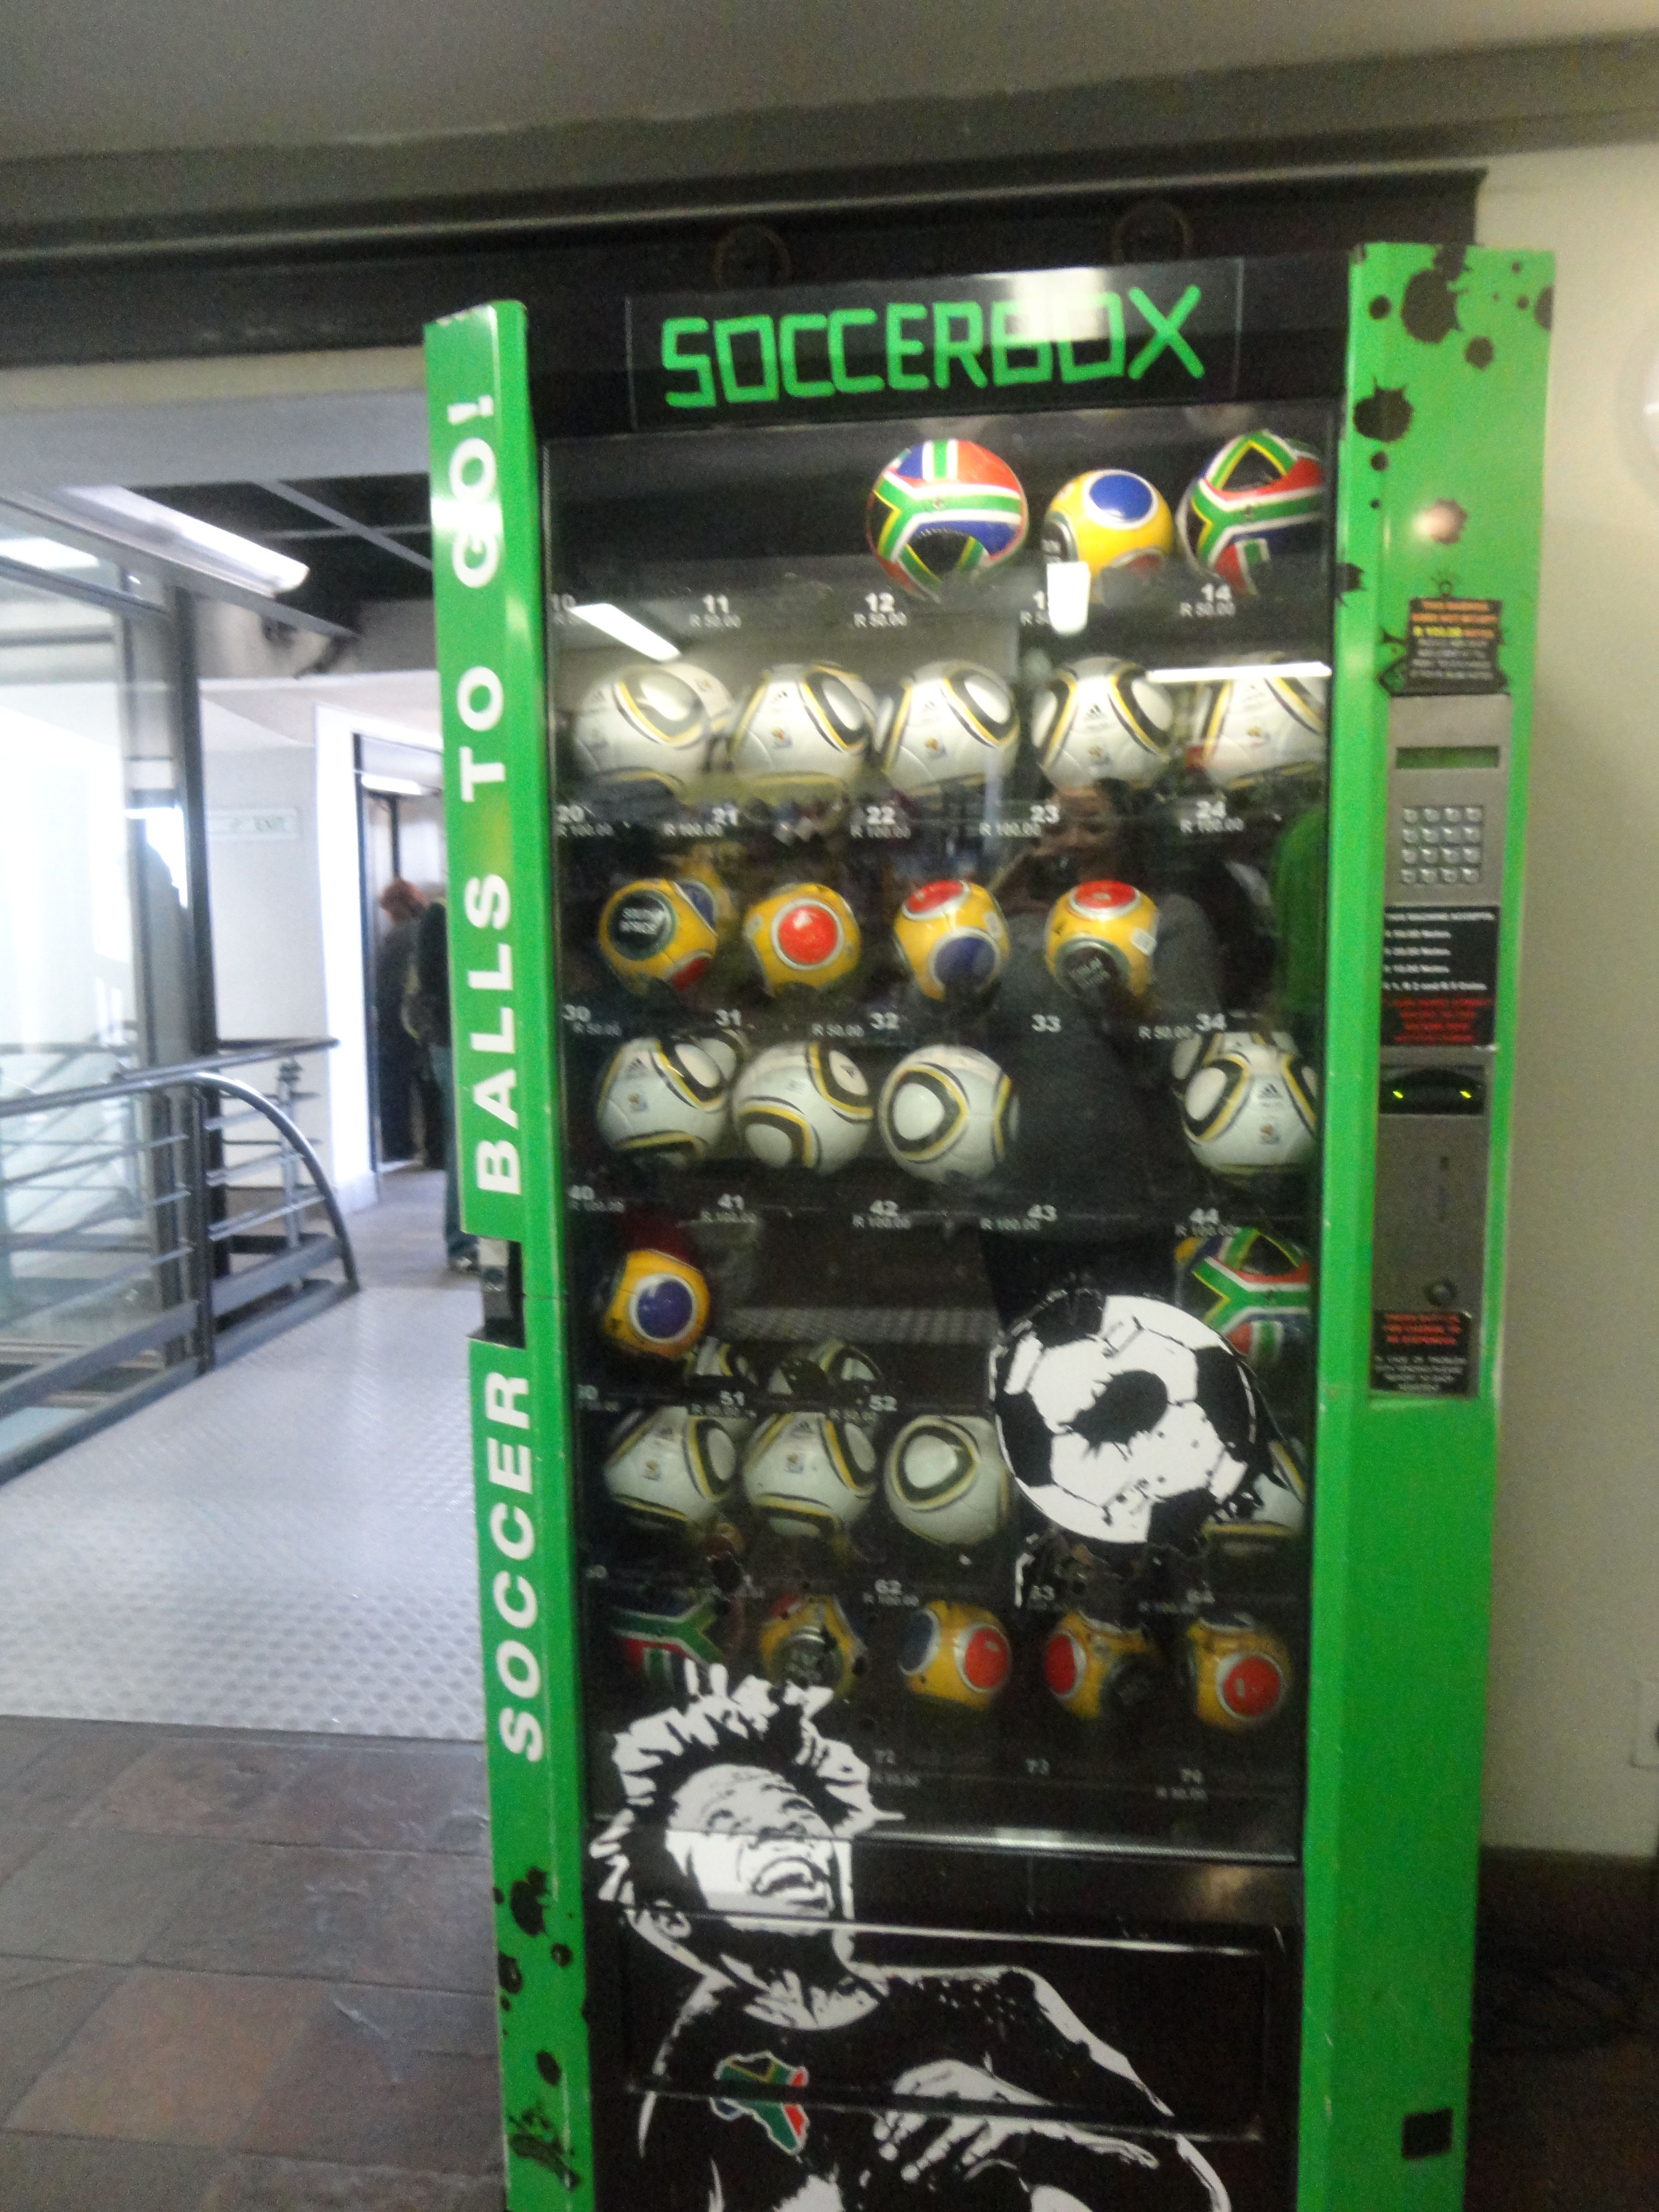 Soccer ball vending machine at Table Mountain, Cape Town